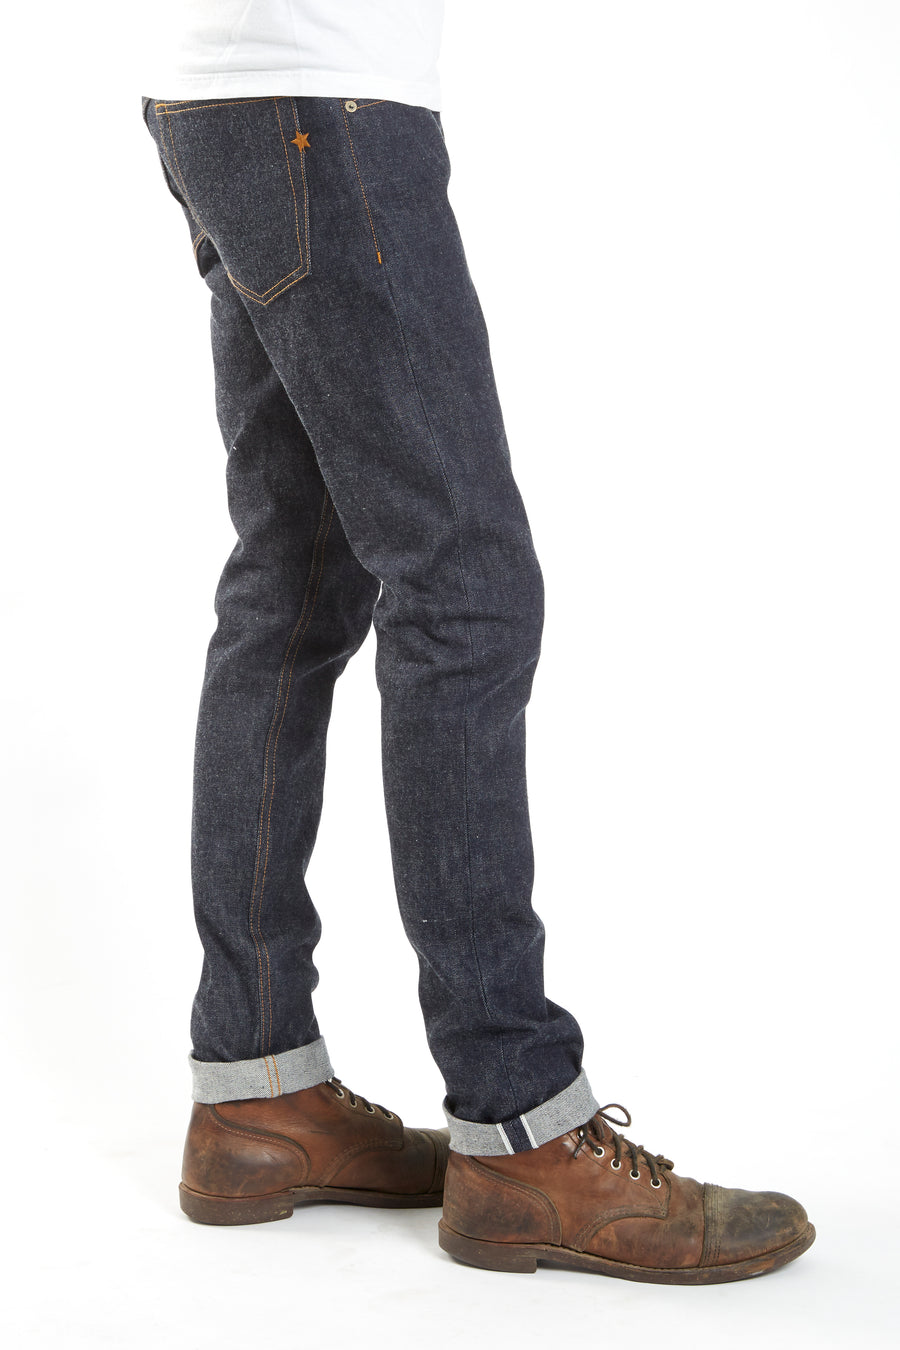 The Slim Taper 18oz 'Slubverter II' Heavyweight Selvage